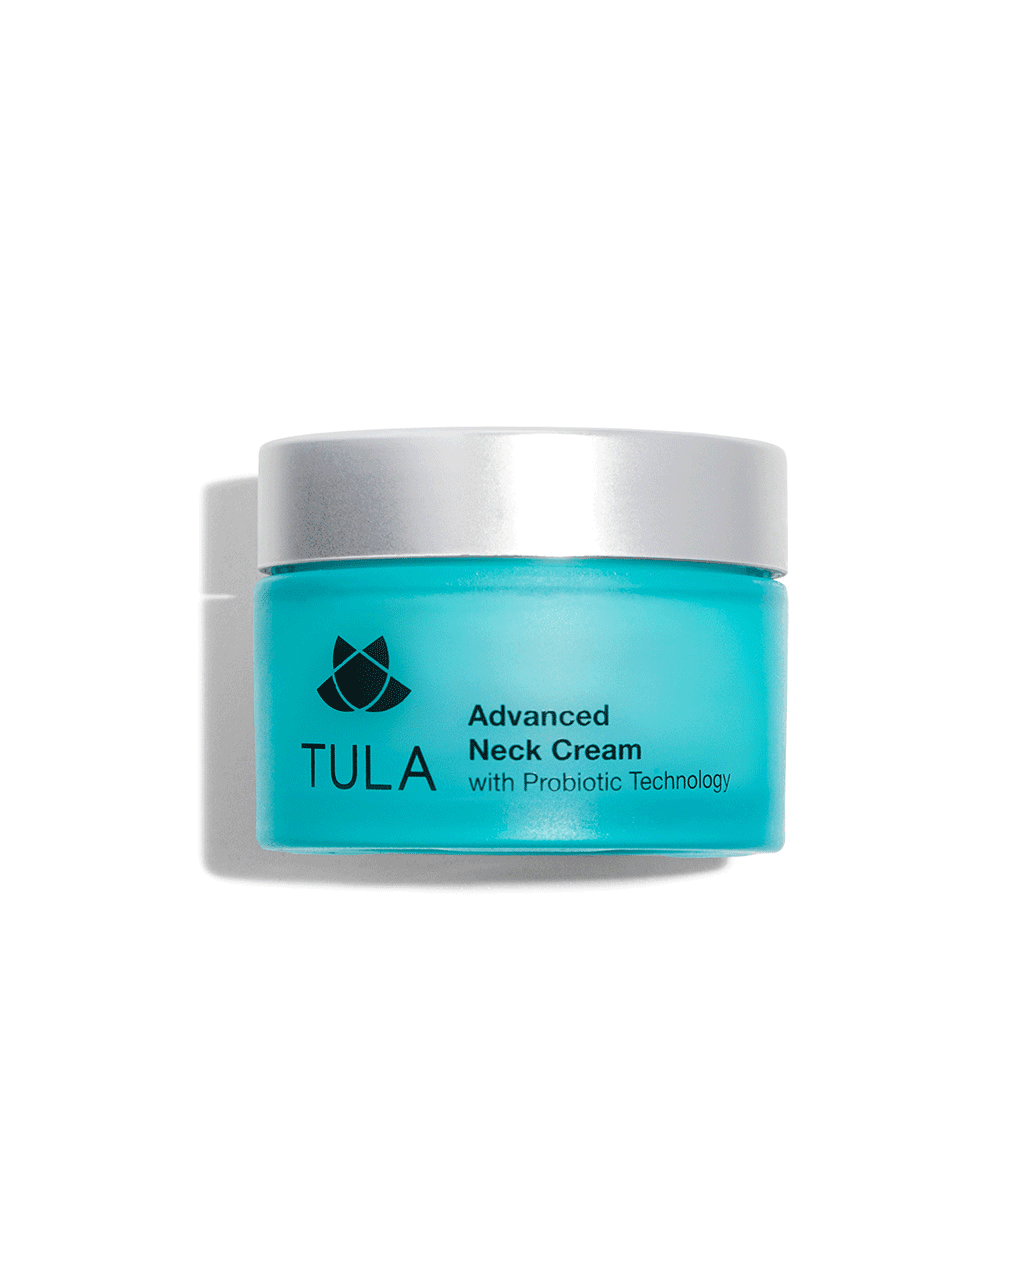 Advanced Neck Cream